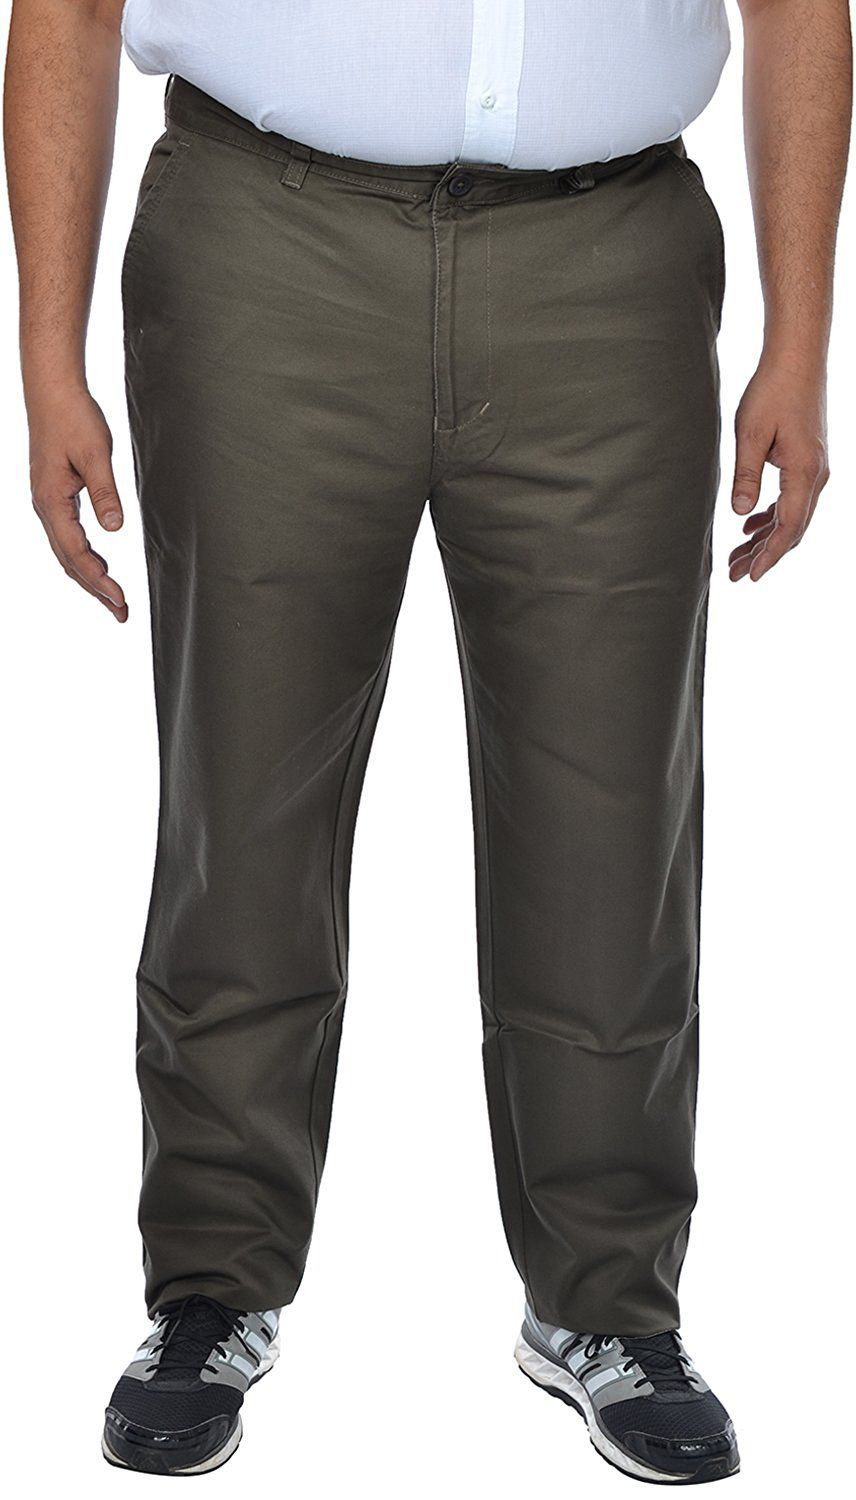 saba Grey Regular -Fit Flat Chinos